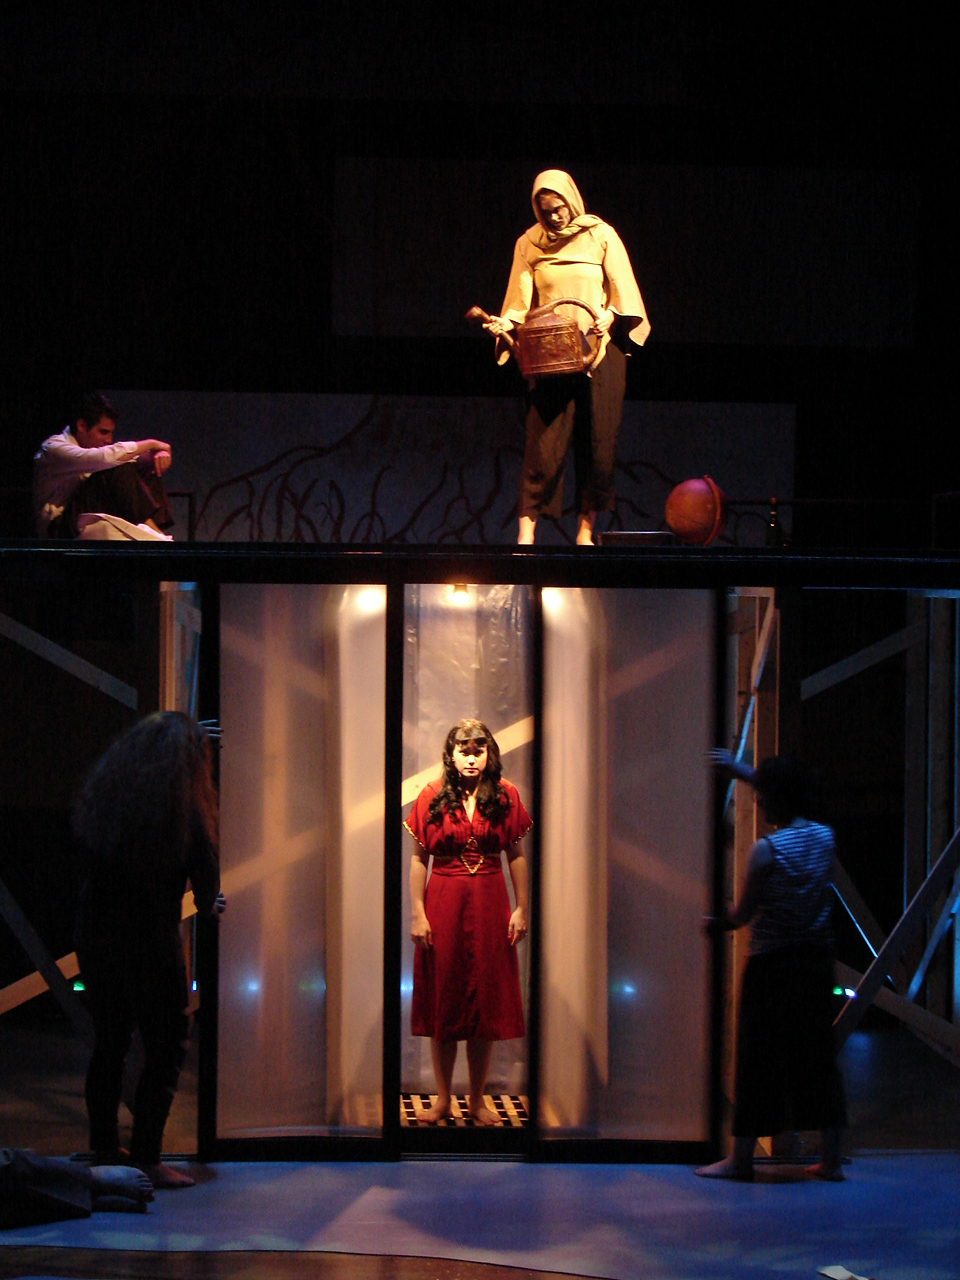 the concept of strings in eurydice by sara ruhl The artistic vision behind eurydice by sarah ruhl is jasdeep gill, the   constructs a room for ching's eurydice out of string, while she jumps.